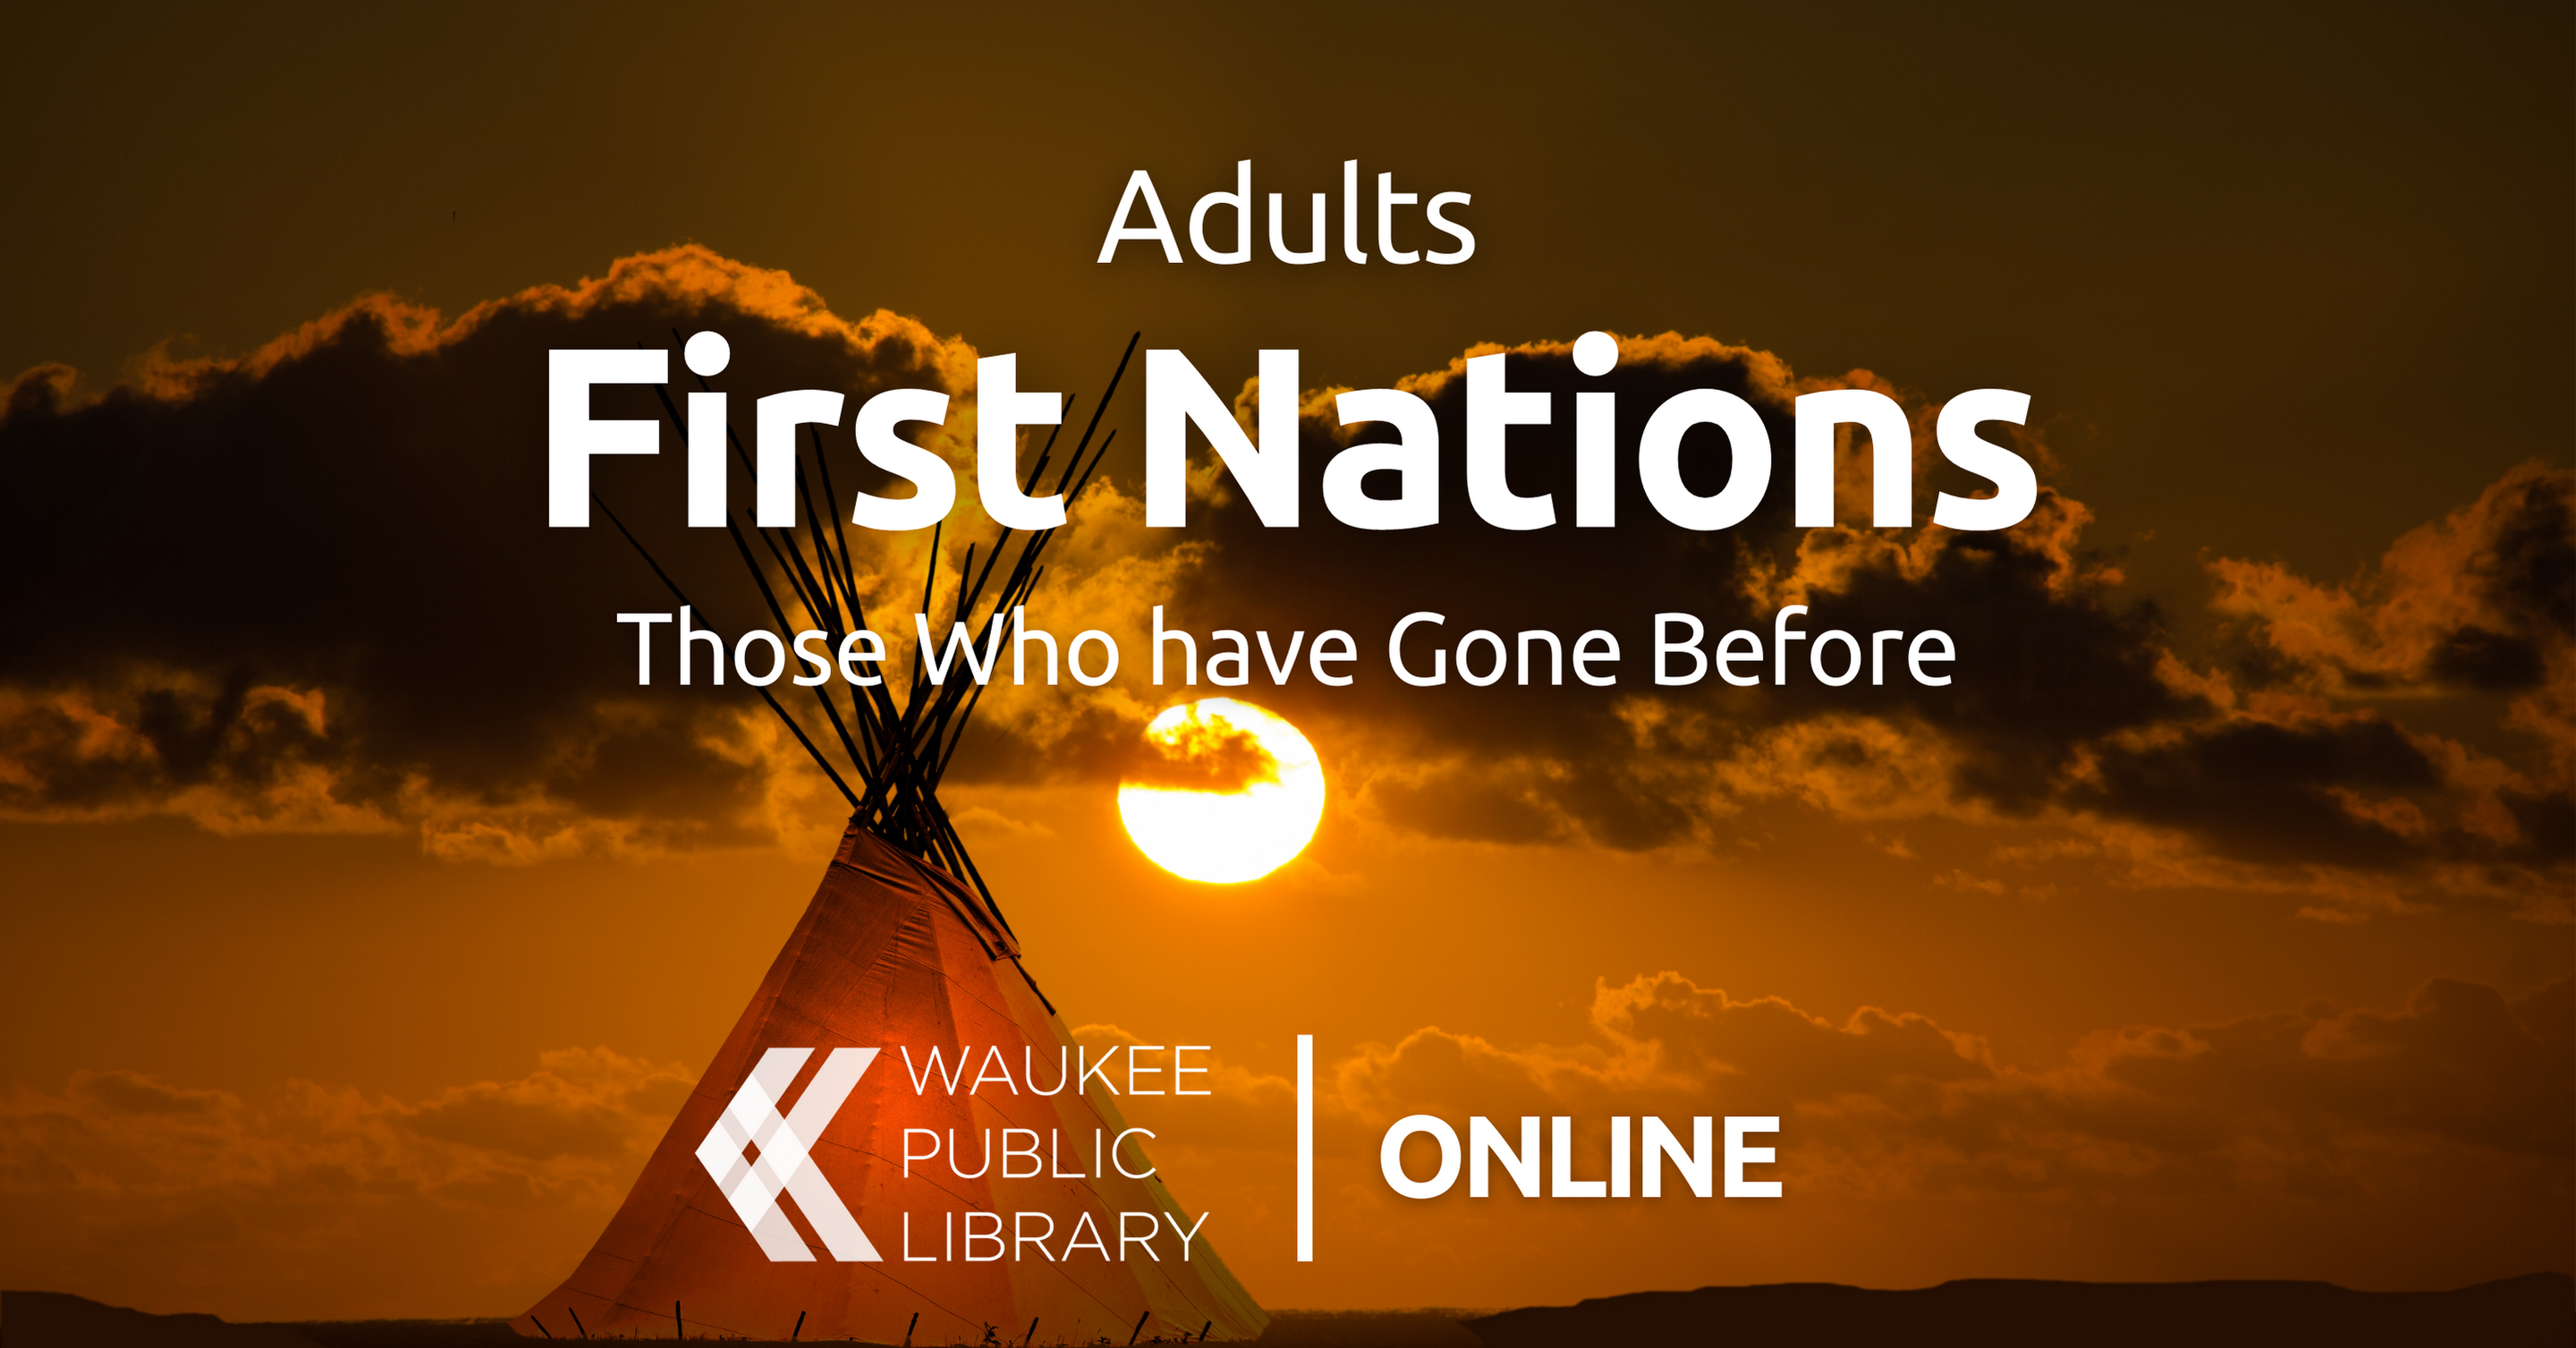 First Nations: Those Who have Gone Before